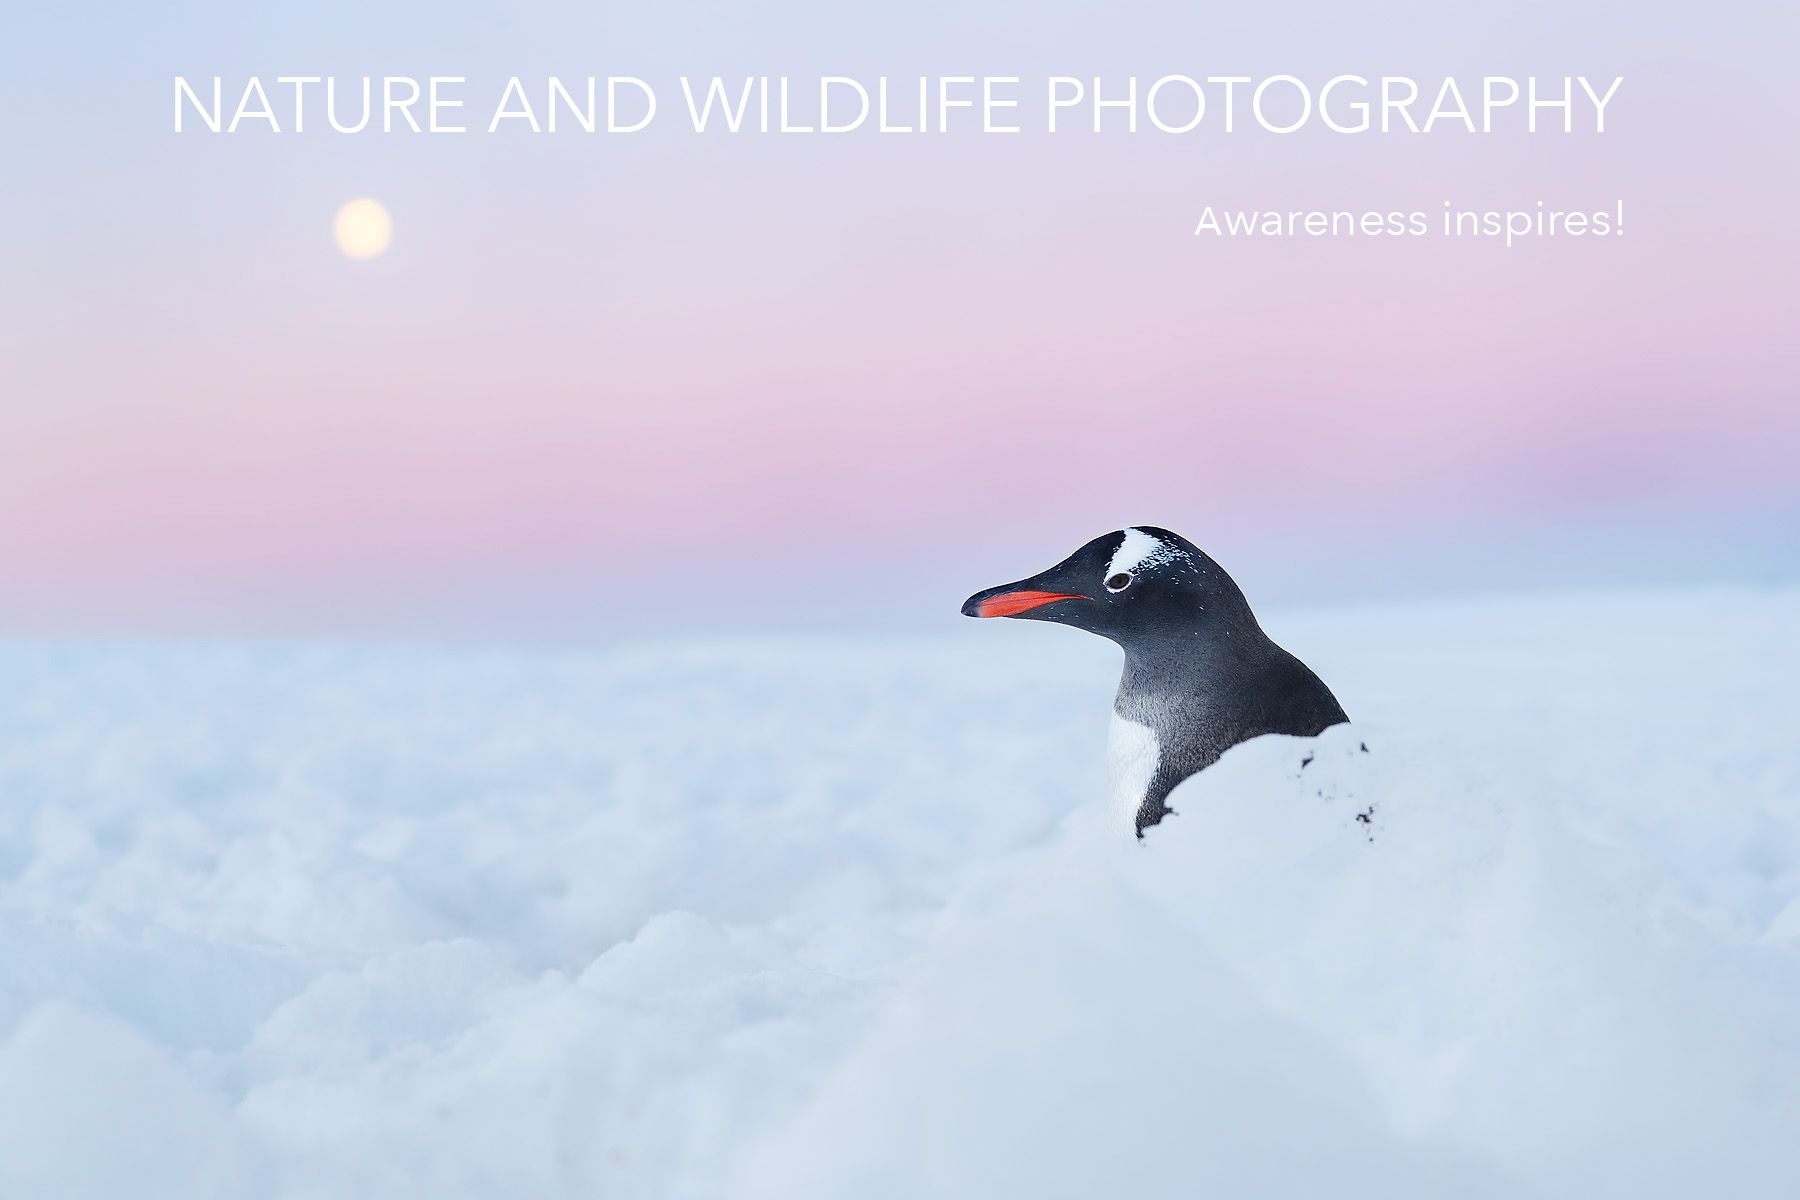 Clemens Vanderwerf_Gentoo penguin in snow with moon.jpg